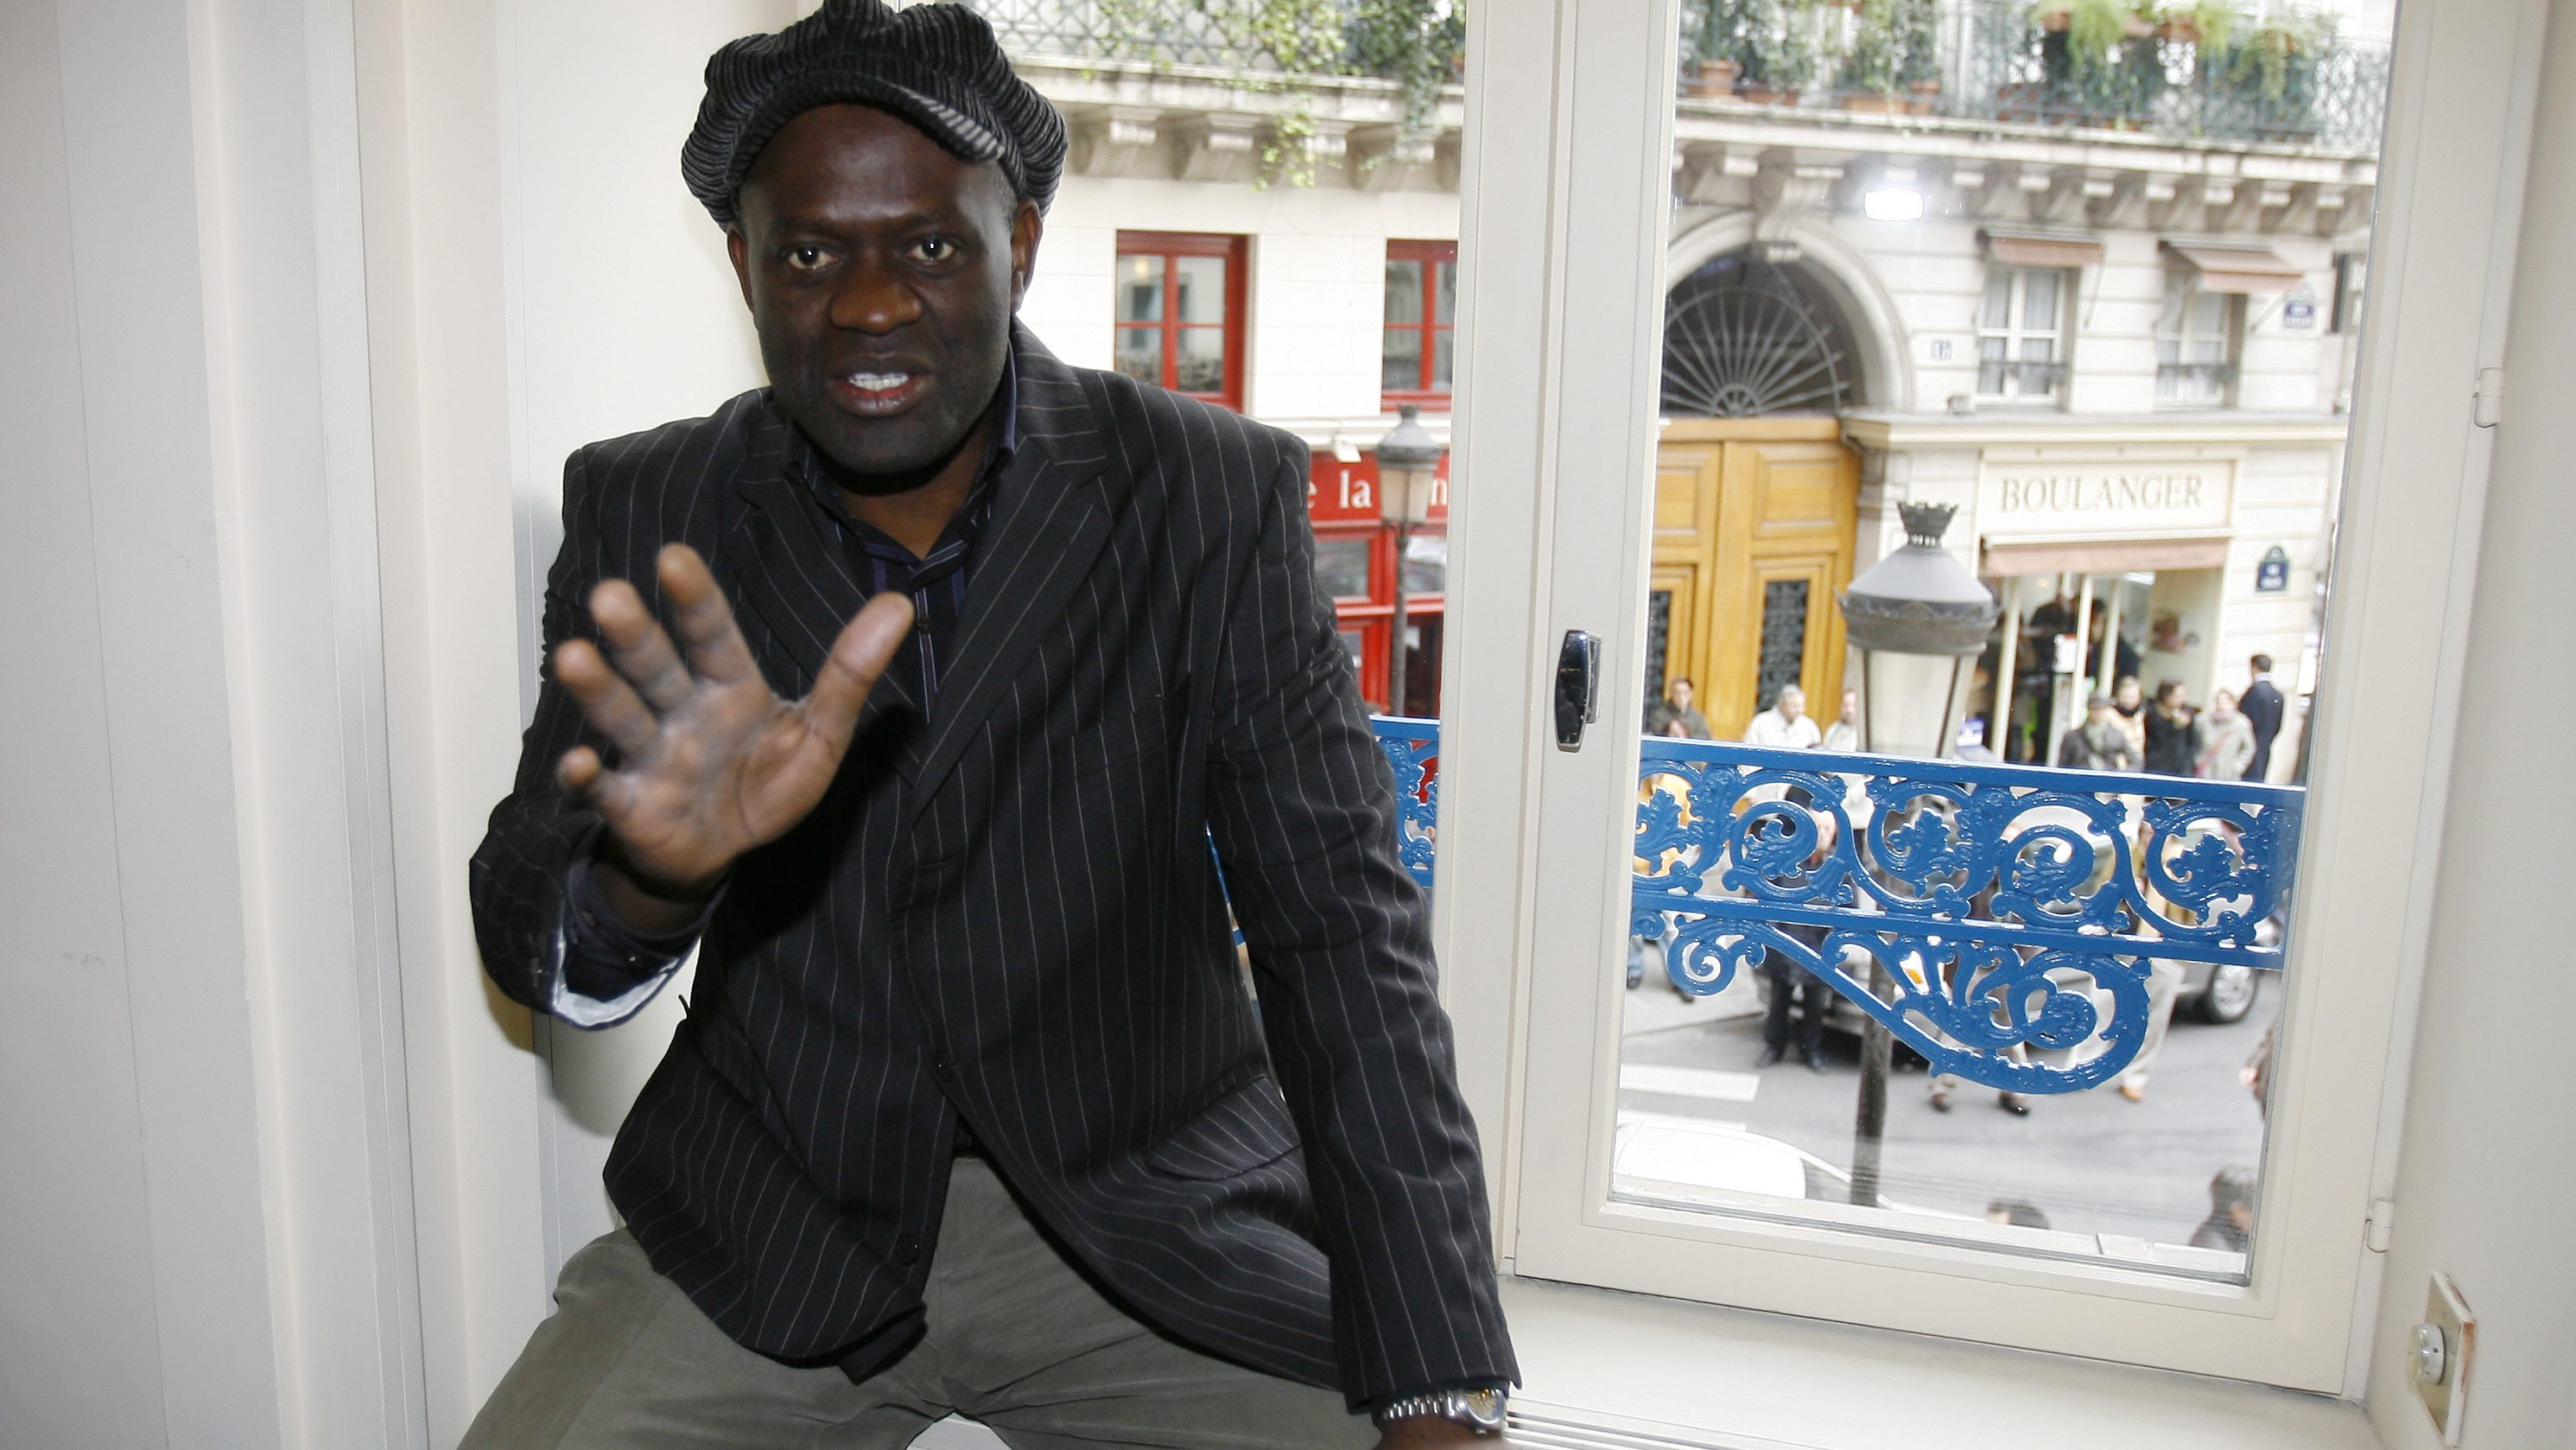 French Congolese born author Alain Mabanckou poses for photographers at the Drouant restaurant in Paris